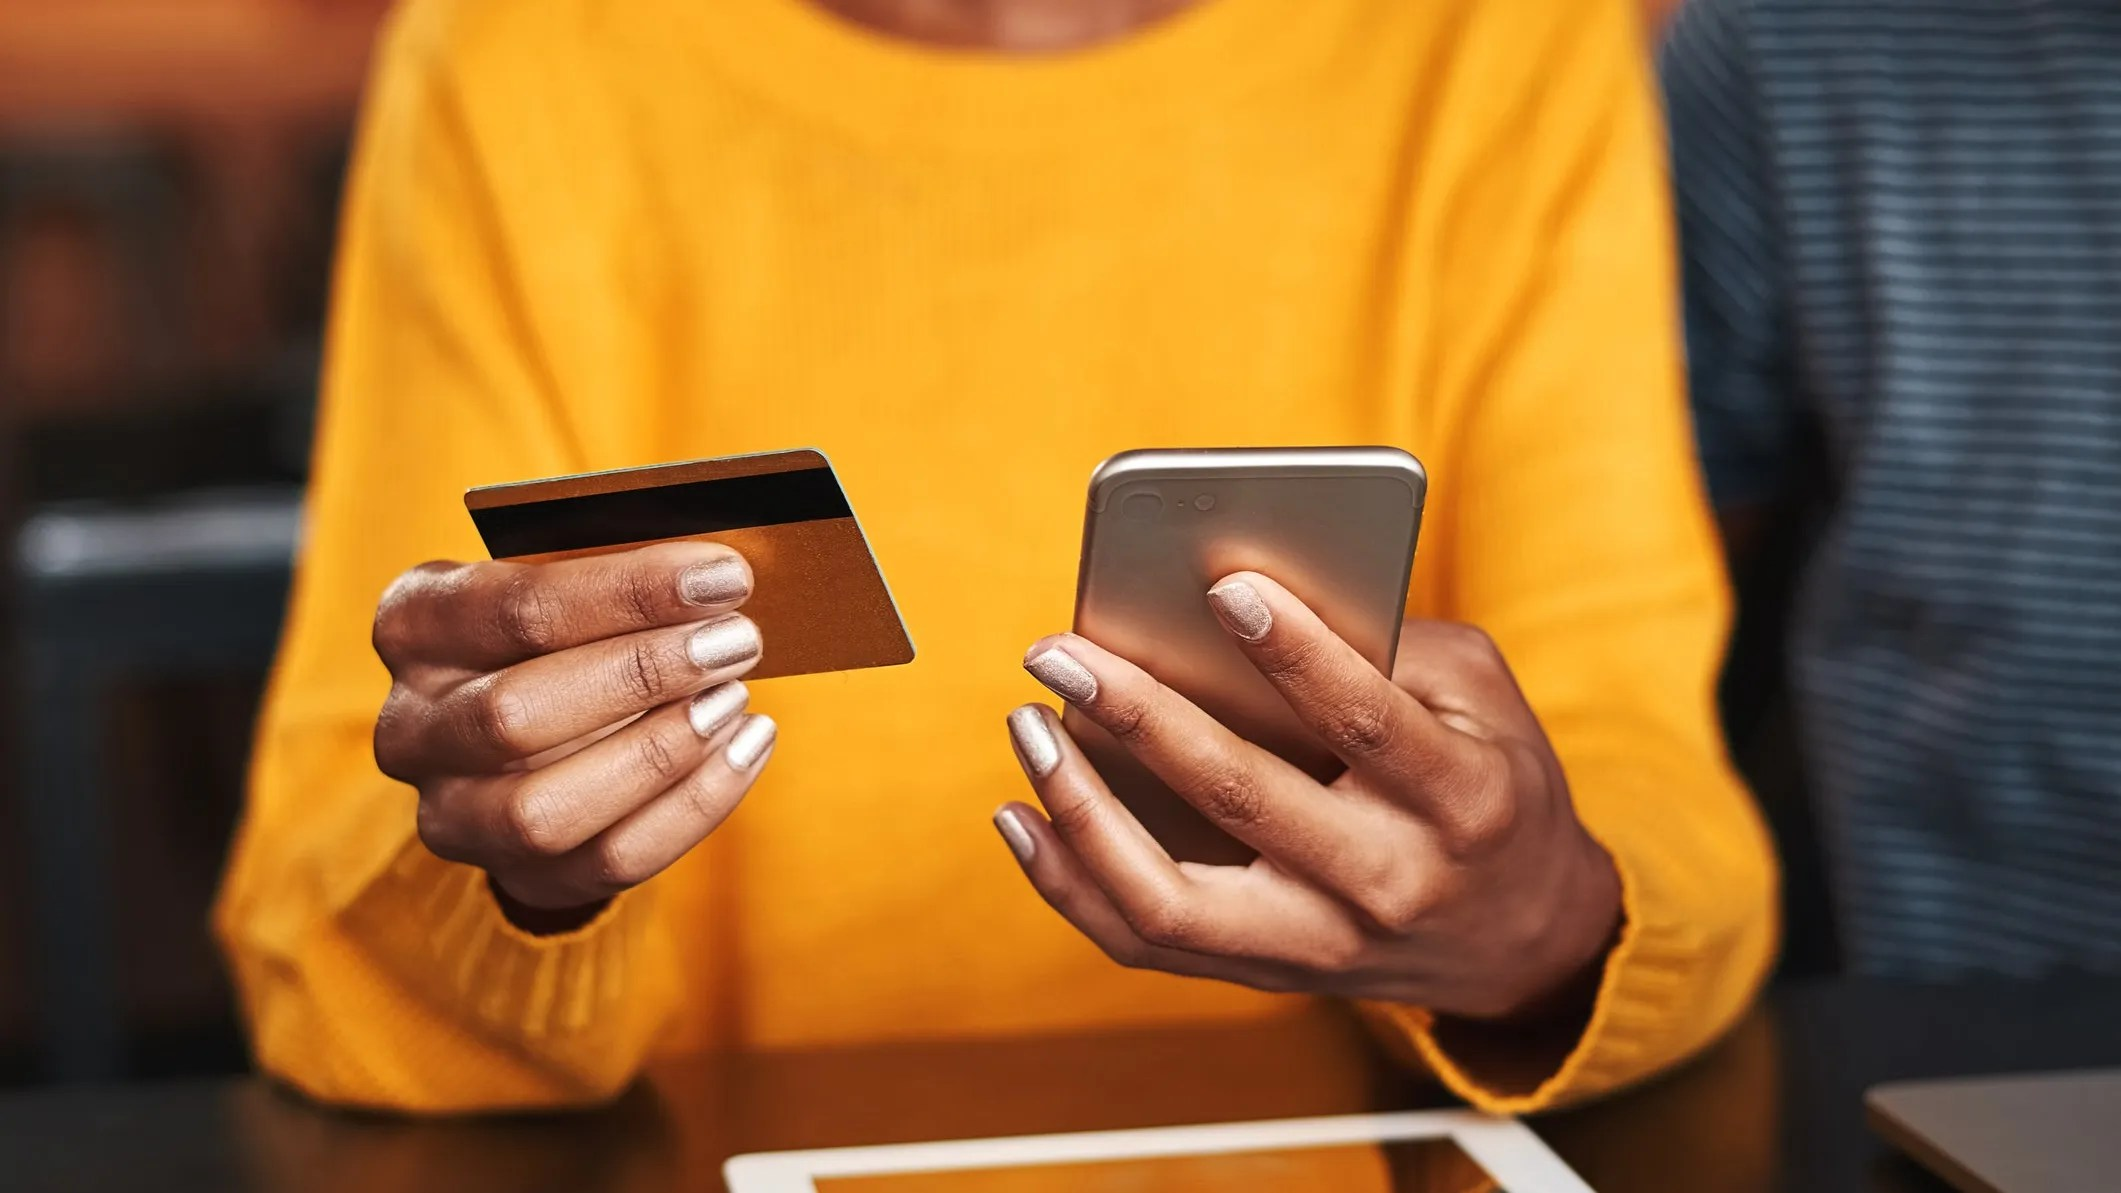 A woman holding a credit card and a mobile phone.